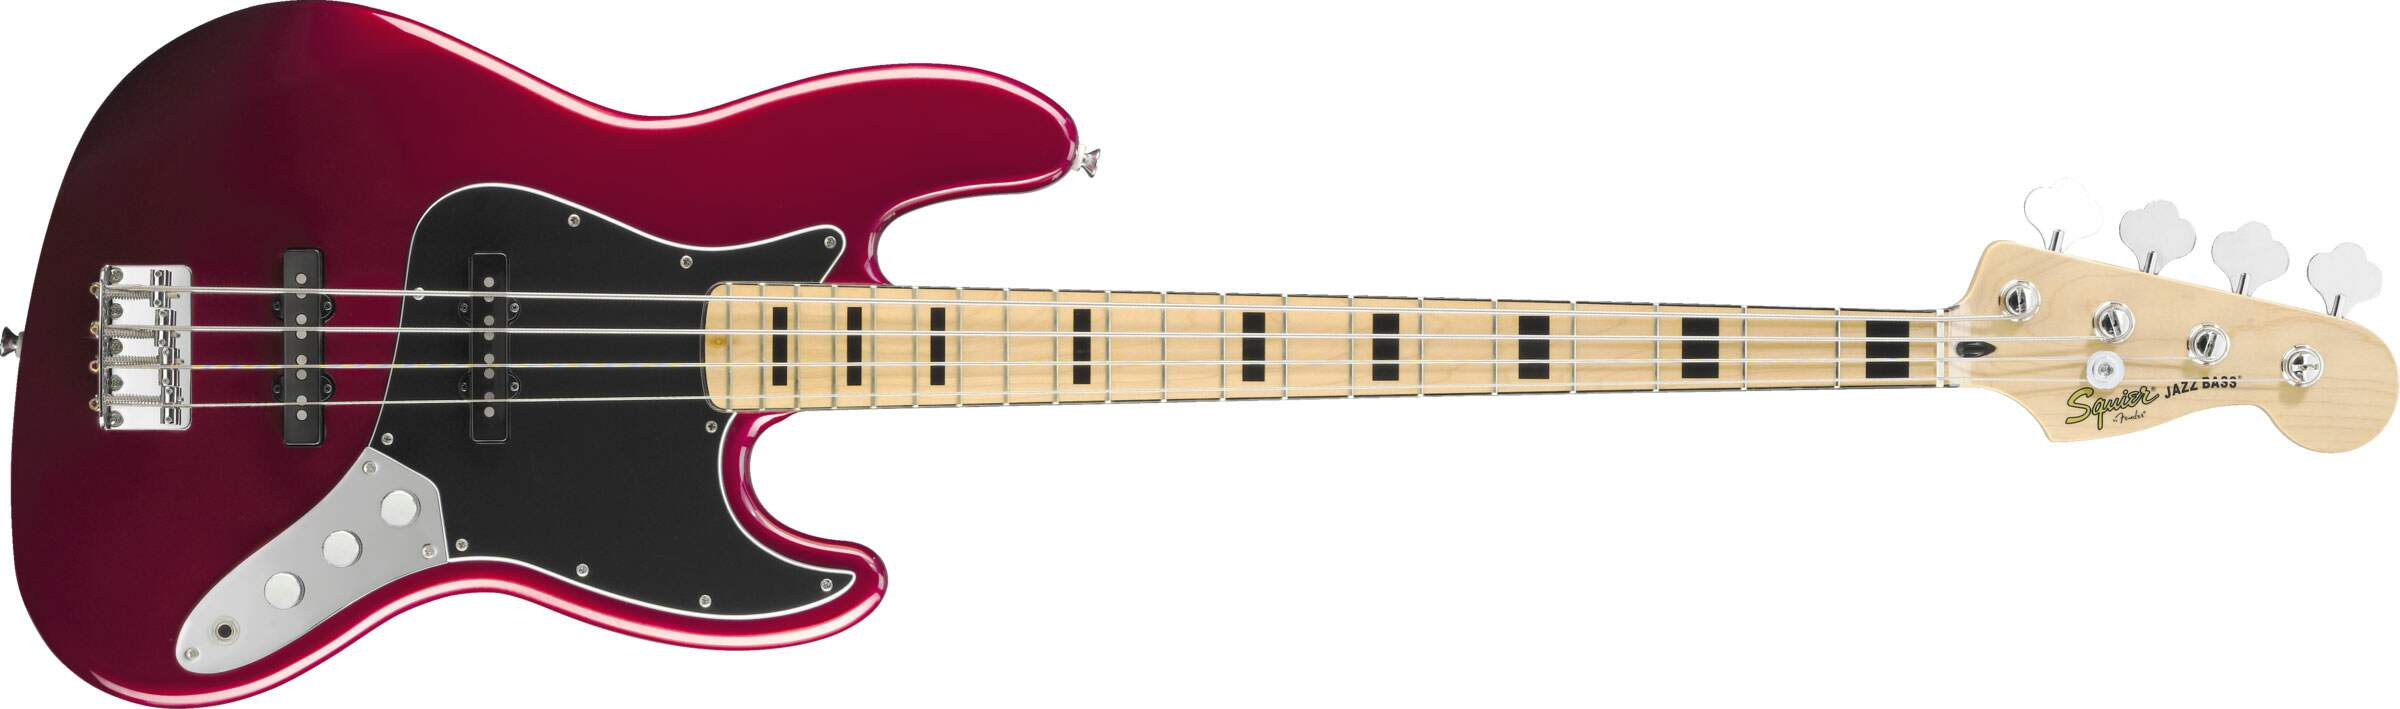 Contra Baixo Fender 030 6702 Squier Vintage Modified J. Bass 70 - 509 Candy Apple Red